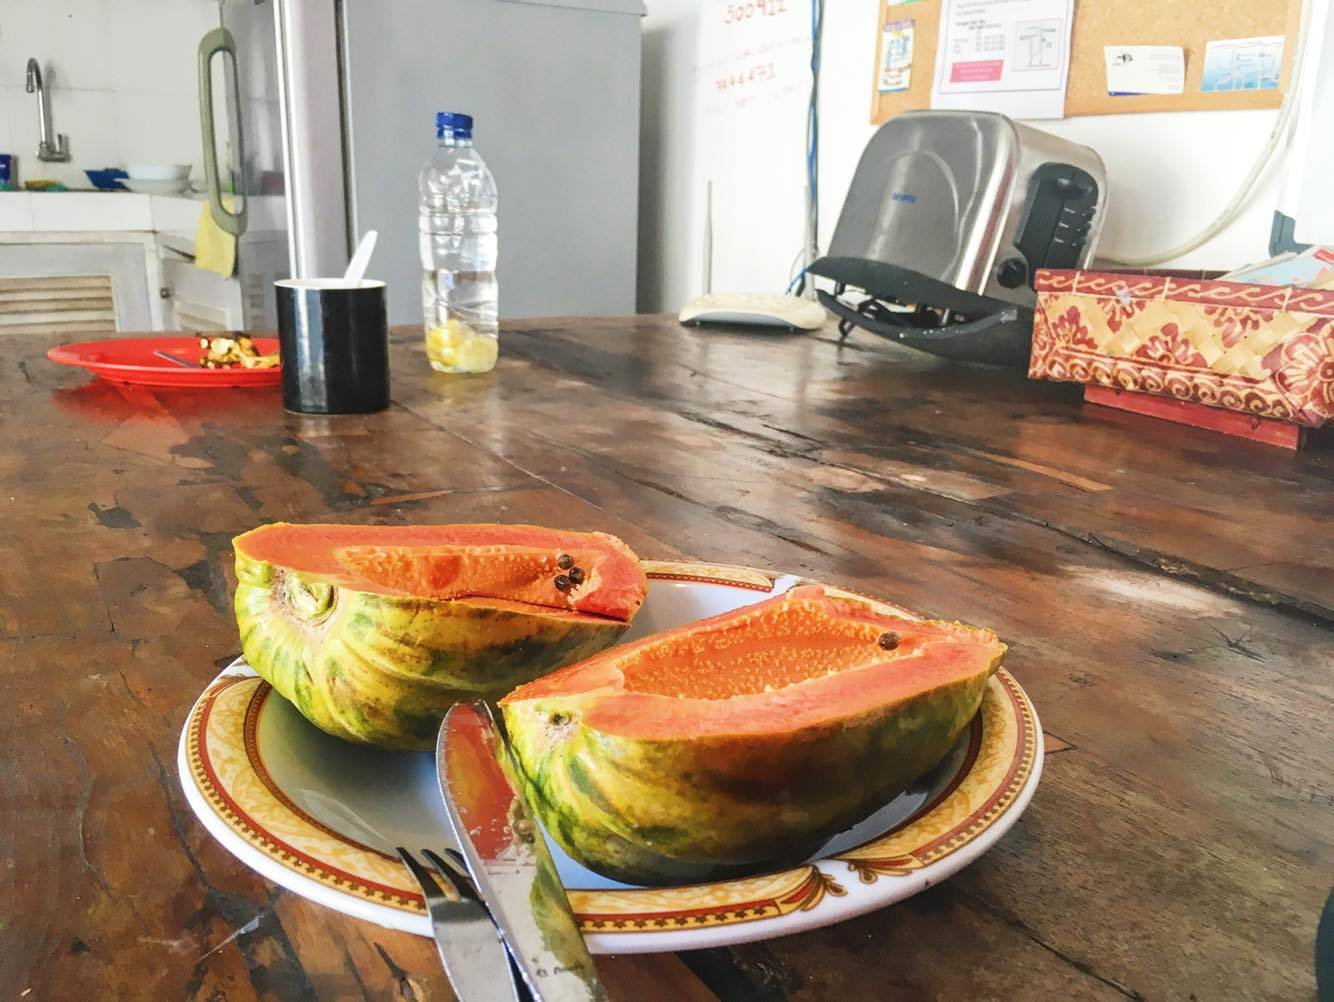 My very cheap, very exotic breakfast of fresh papaya at the shared kitchen table. Plus broken (but still somehow functional) toaster.